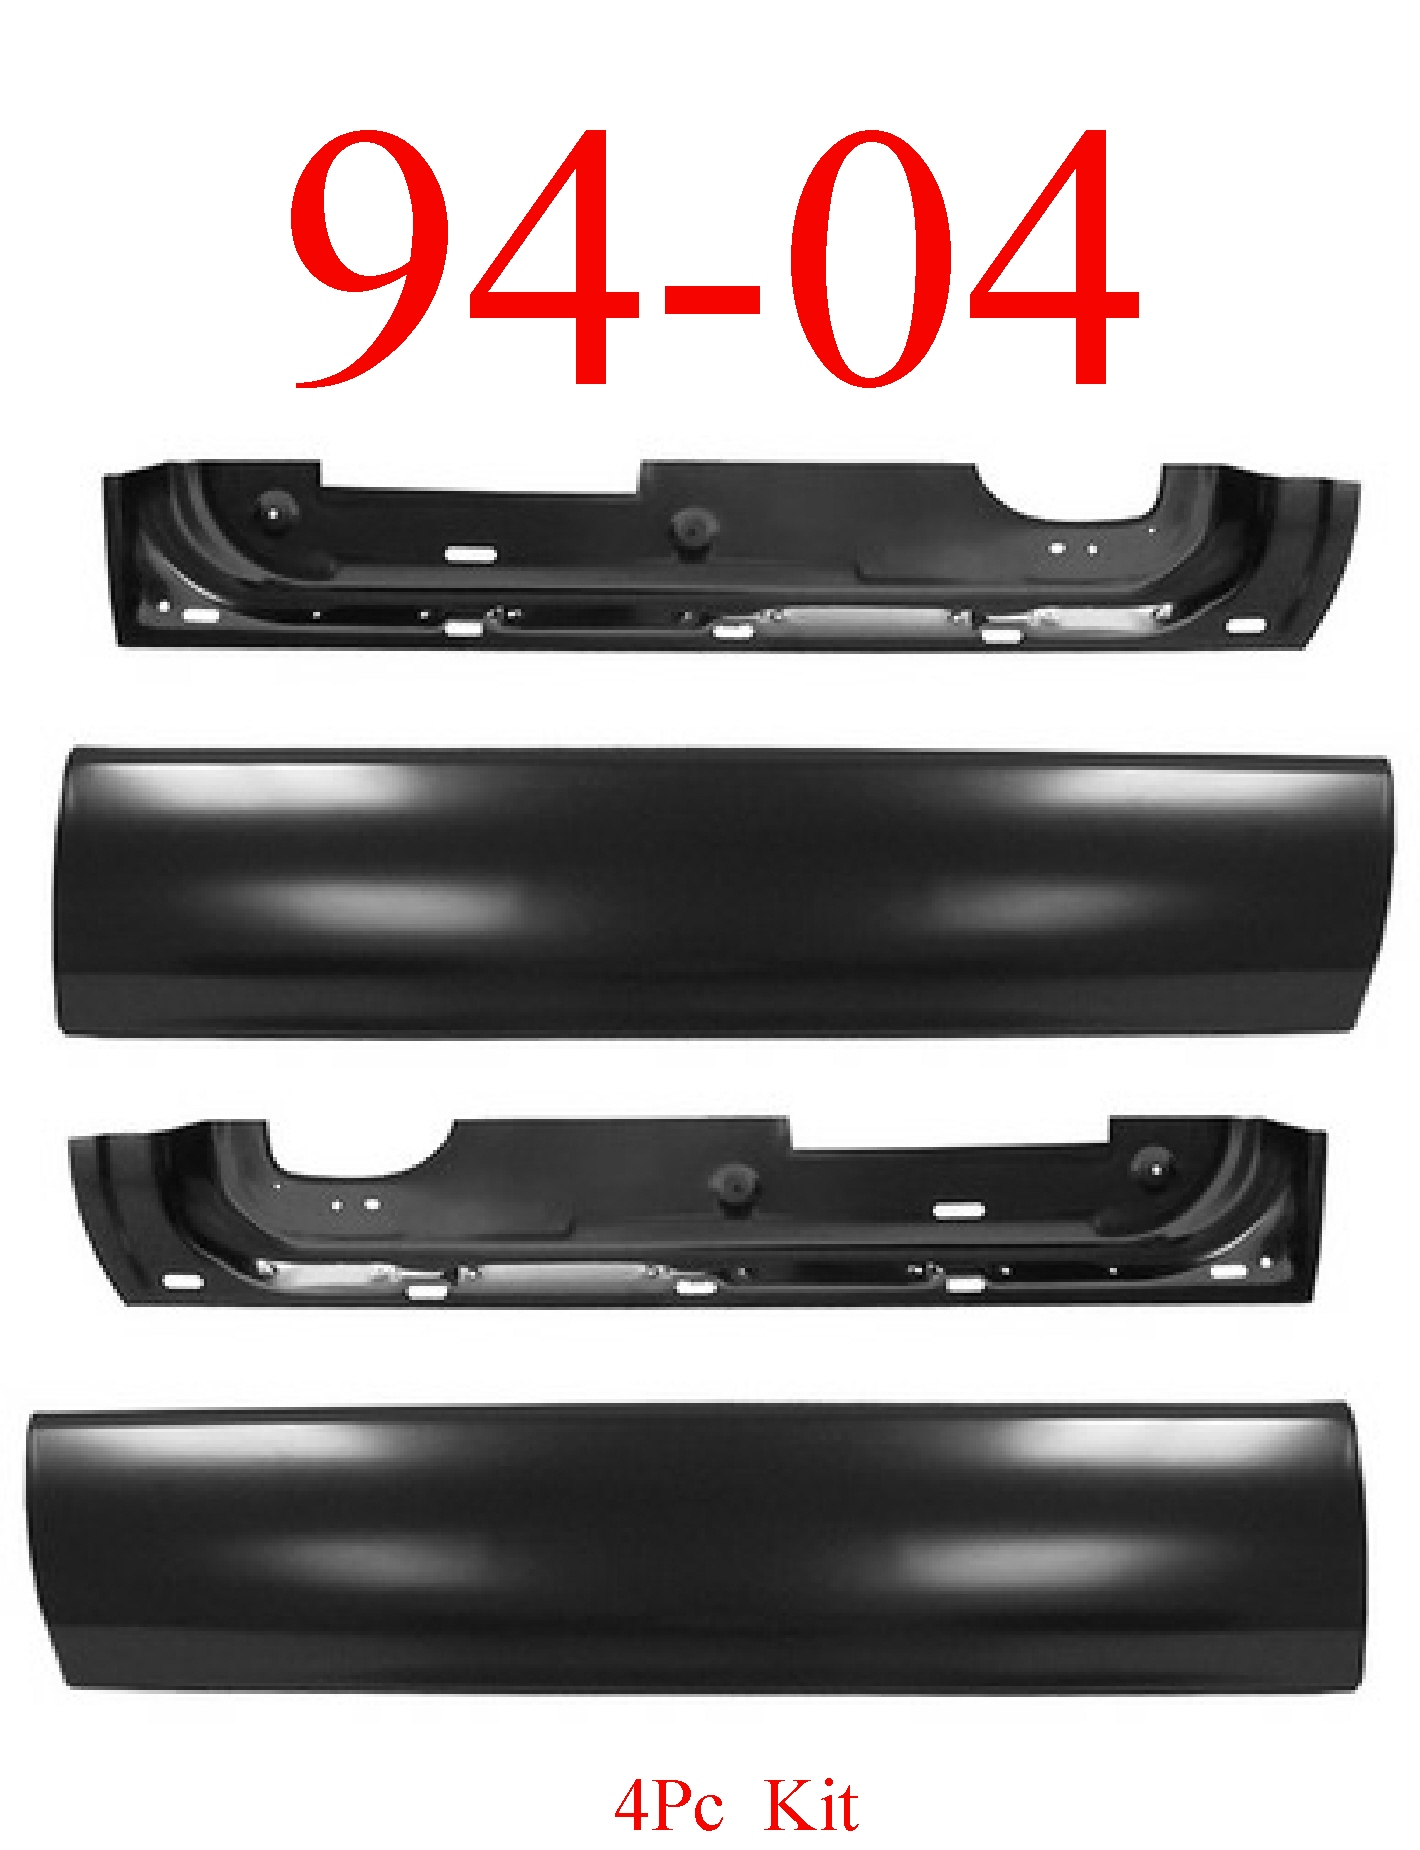 Chevy S10 Series 94-04, MrTailLight com Online Store